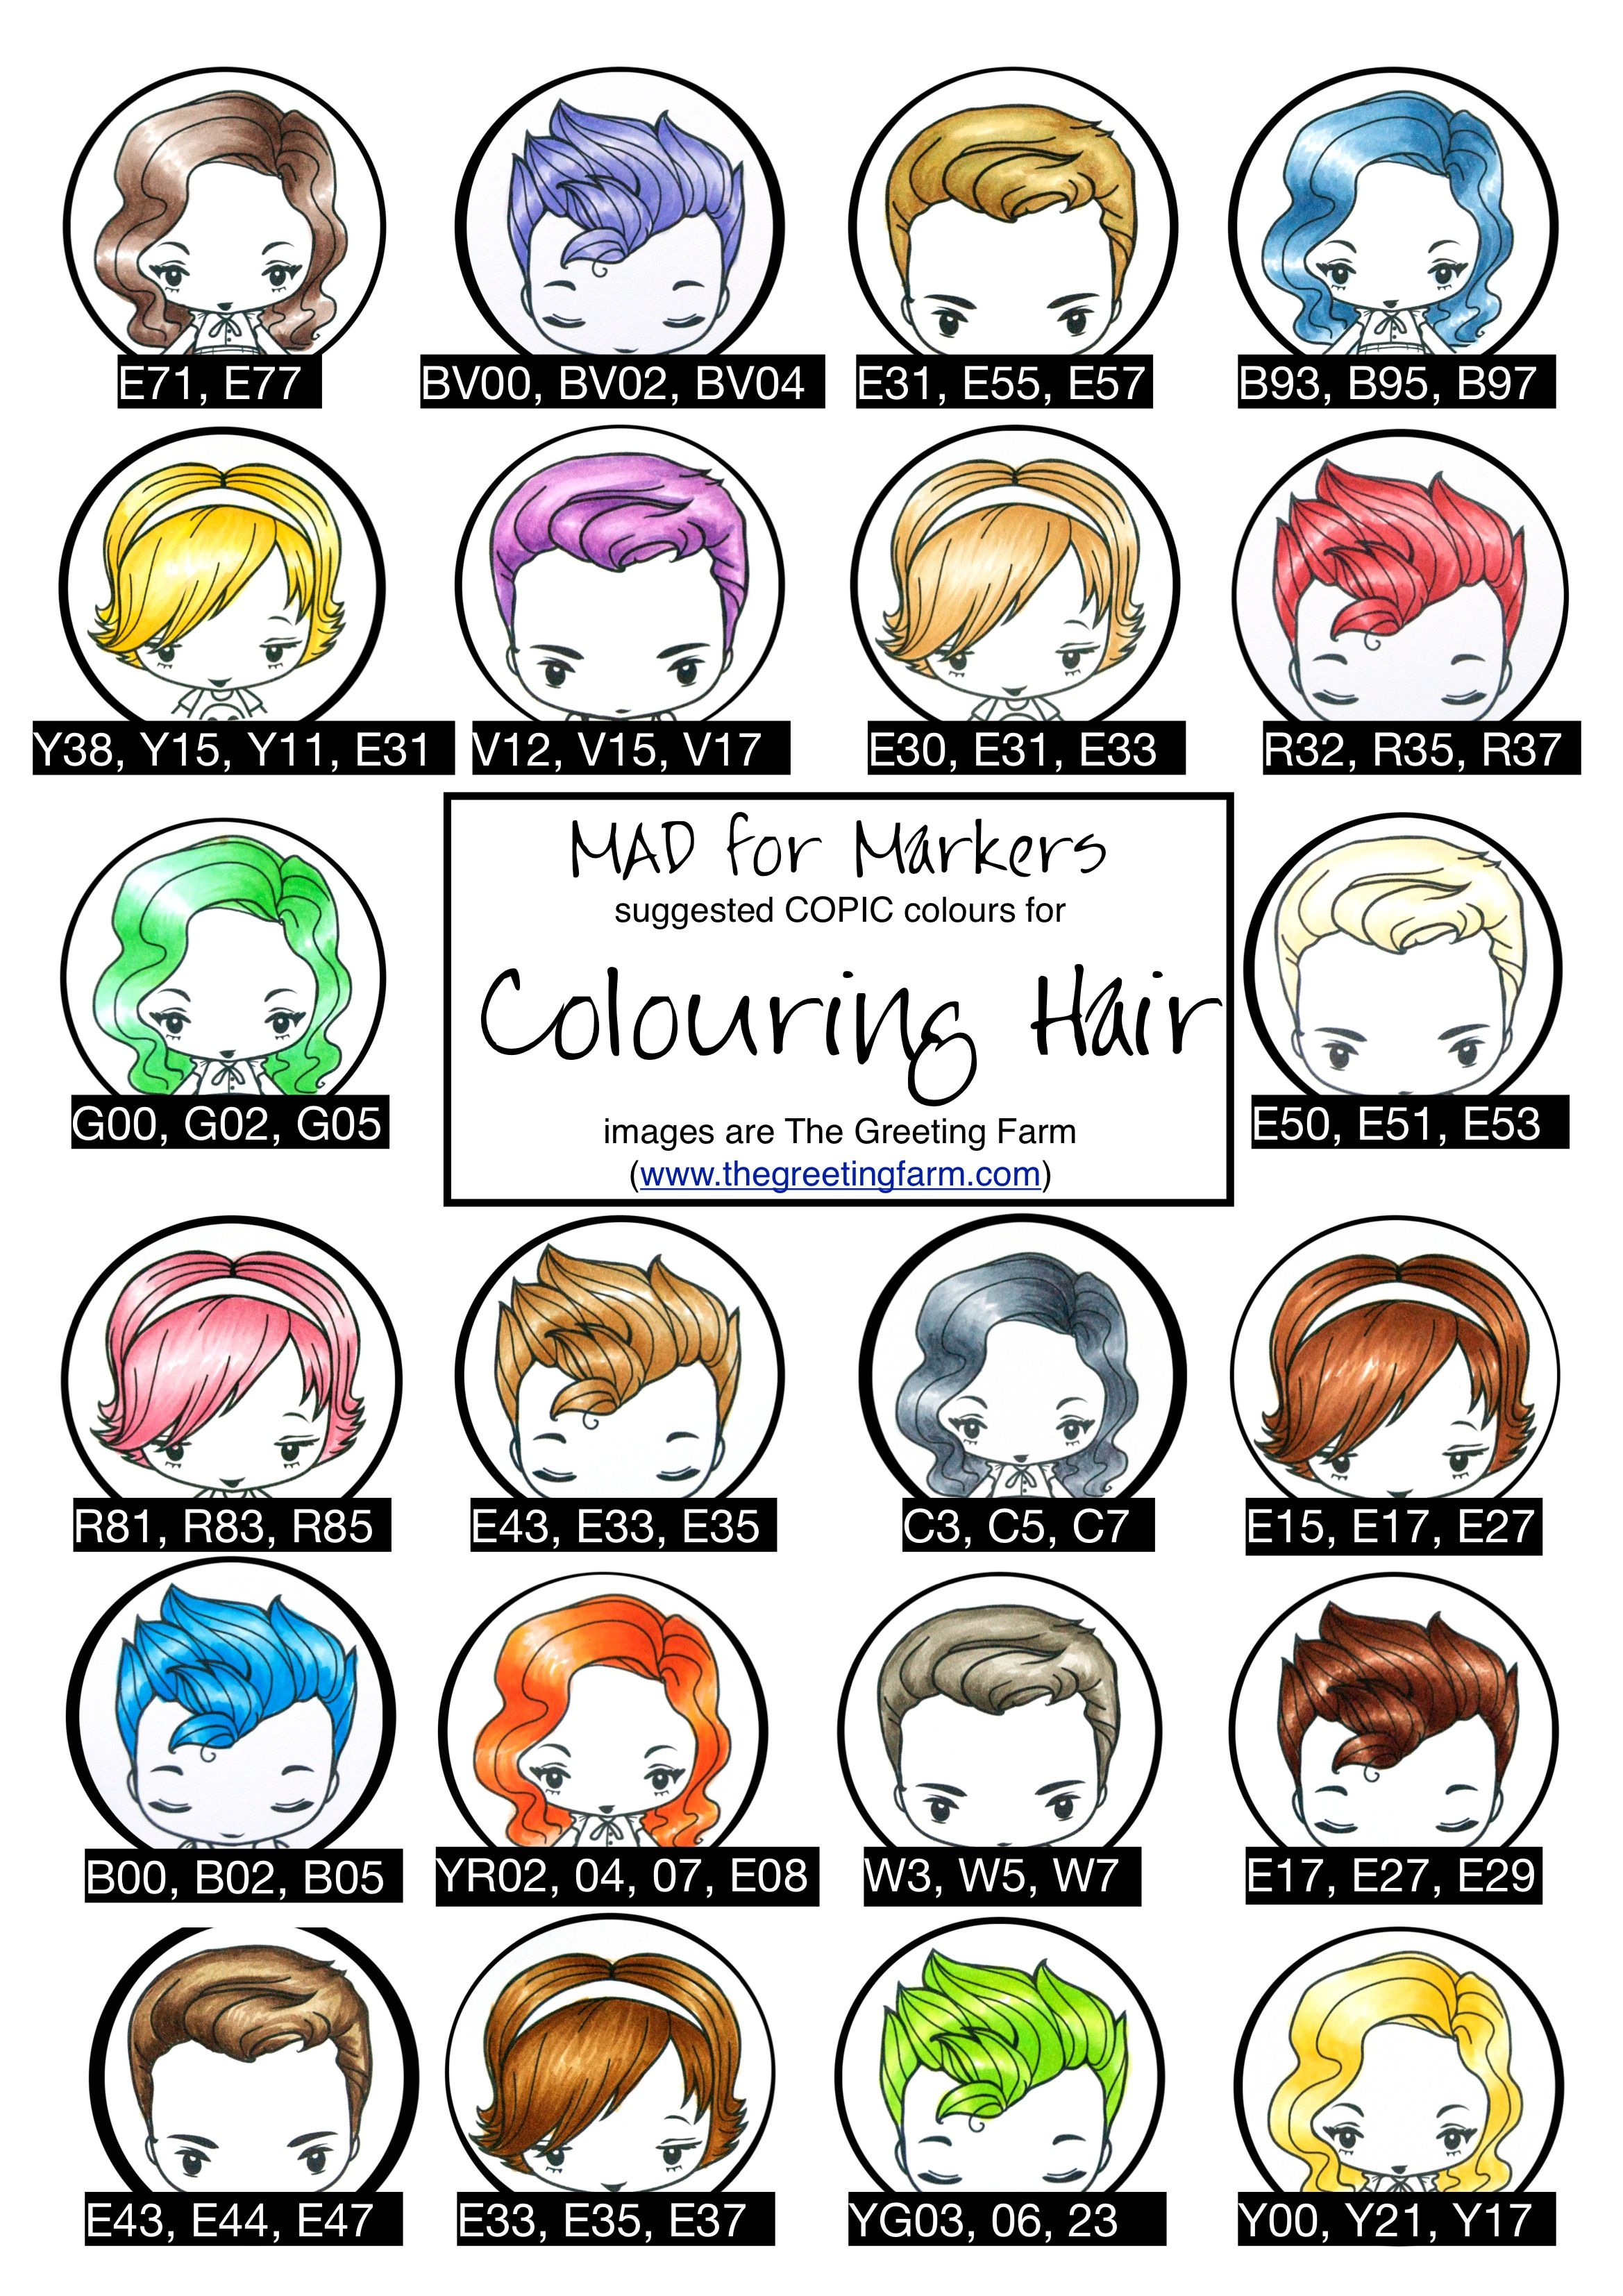 copic hair color suggestions